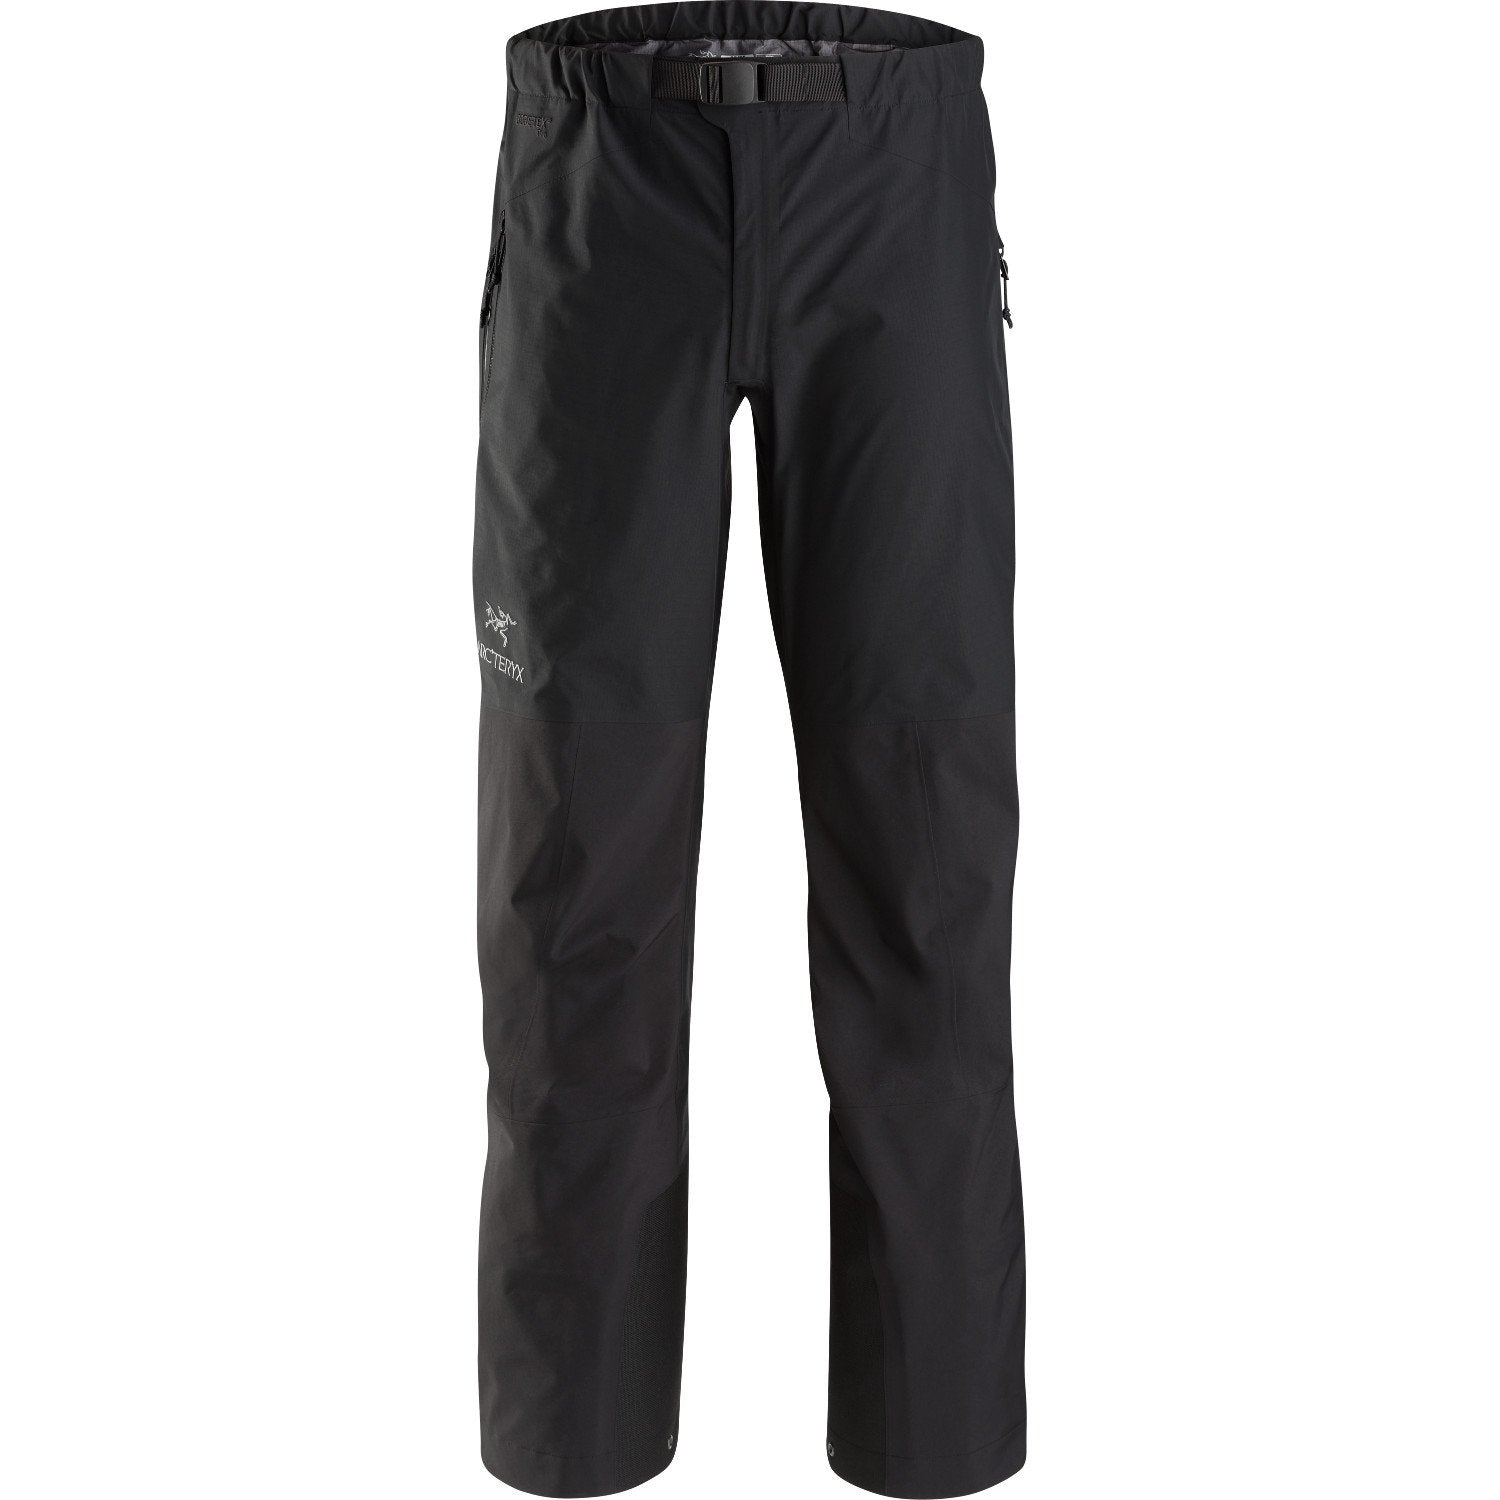 Front View of the Beta AR Pant in Black, showing Goretex outer, front zip and white logo